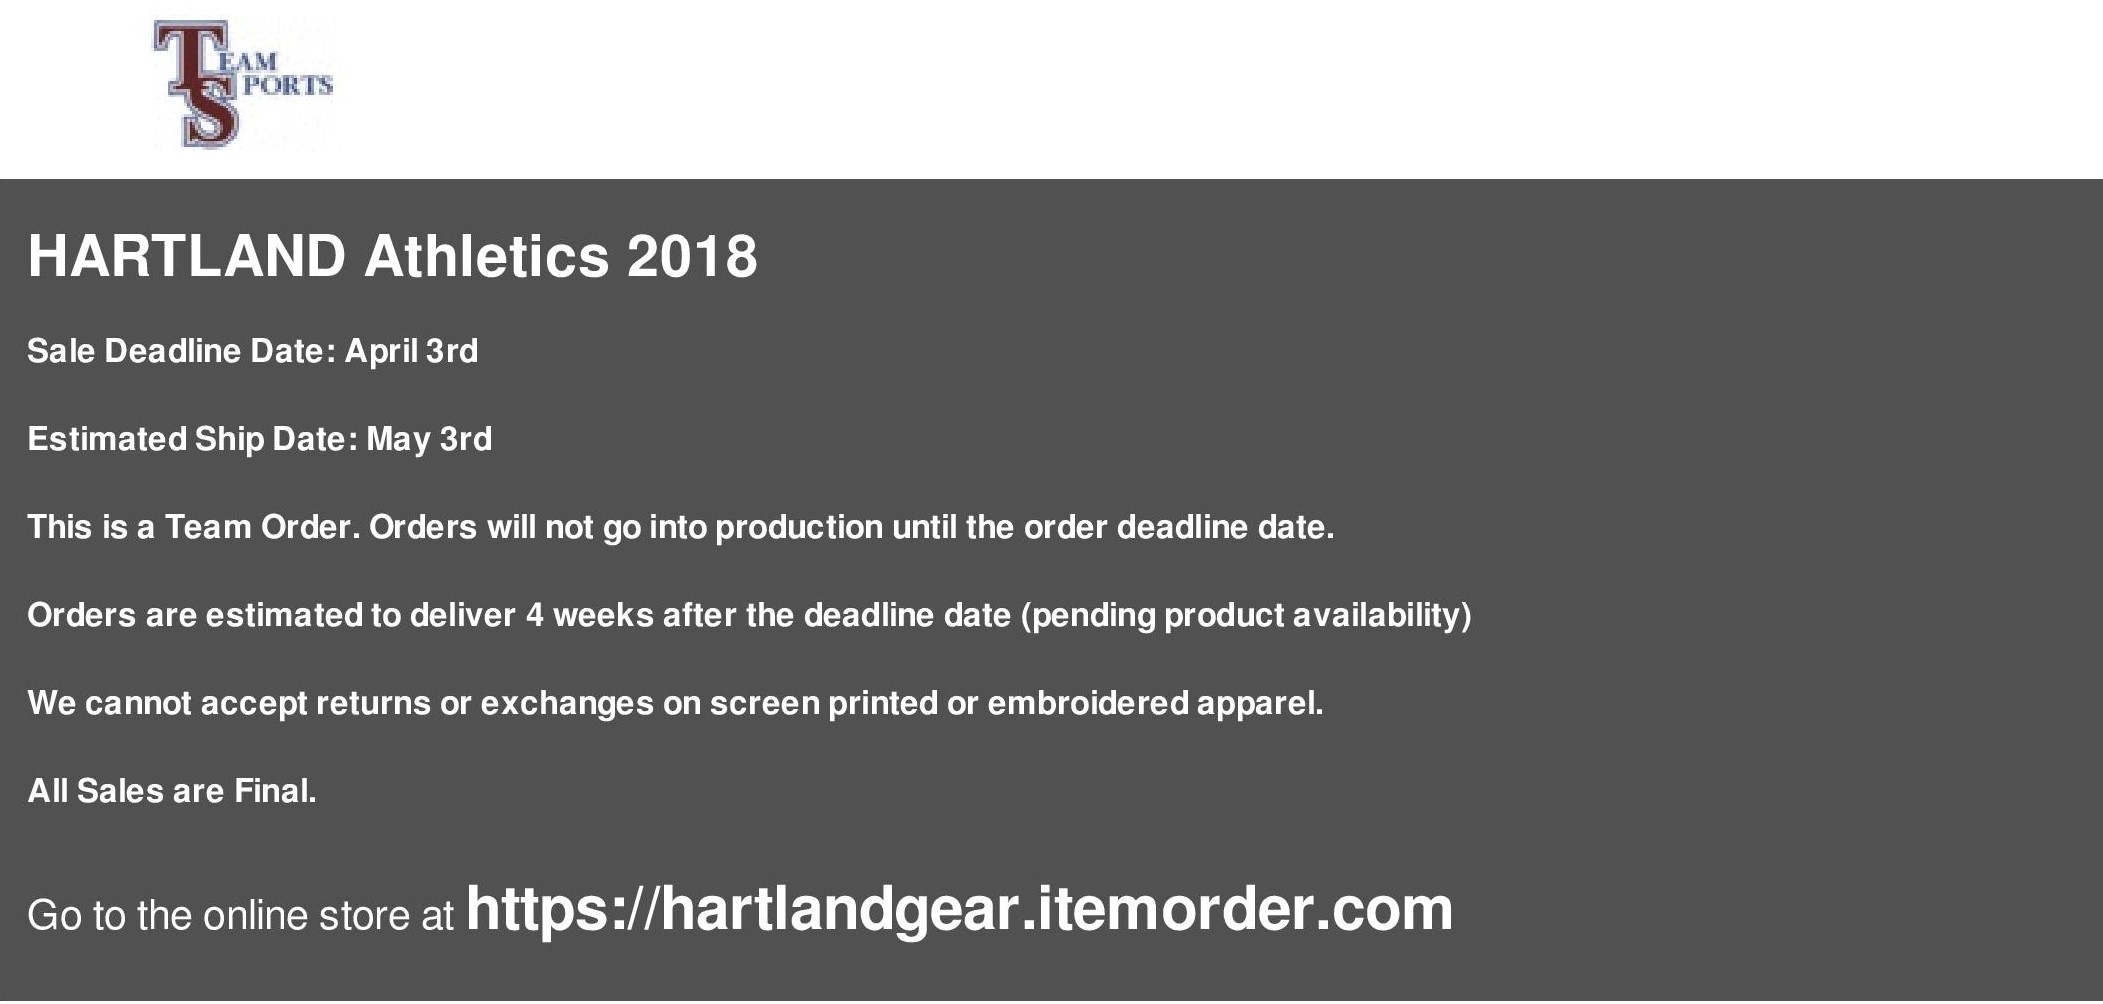 Sale Deadline Date: April 3rd Estimated Ship Date: May 3rd This is a Team Order. Orders will not go into production until the order deadline date. Orders are estimated to deliver 4 weeks after the deadline date (pending product availability) We cannot accept returns or exchanges on screen printed or embroidered apparel. All Sales are Final. Online store at https://hartlandgear.itemorder.com